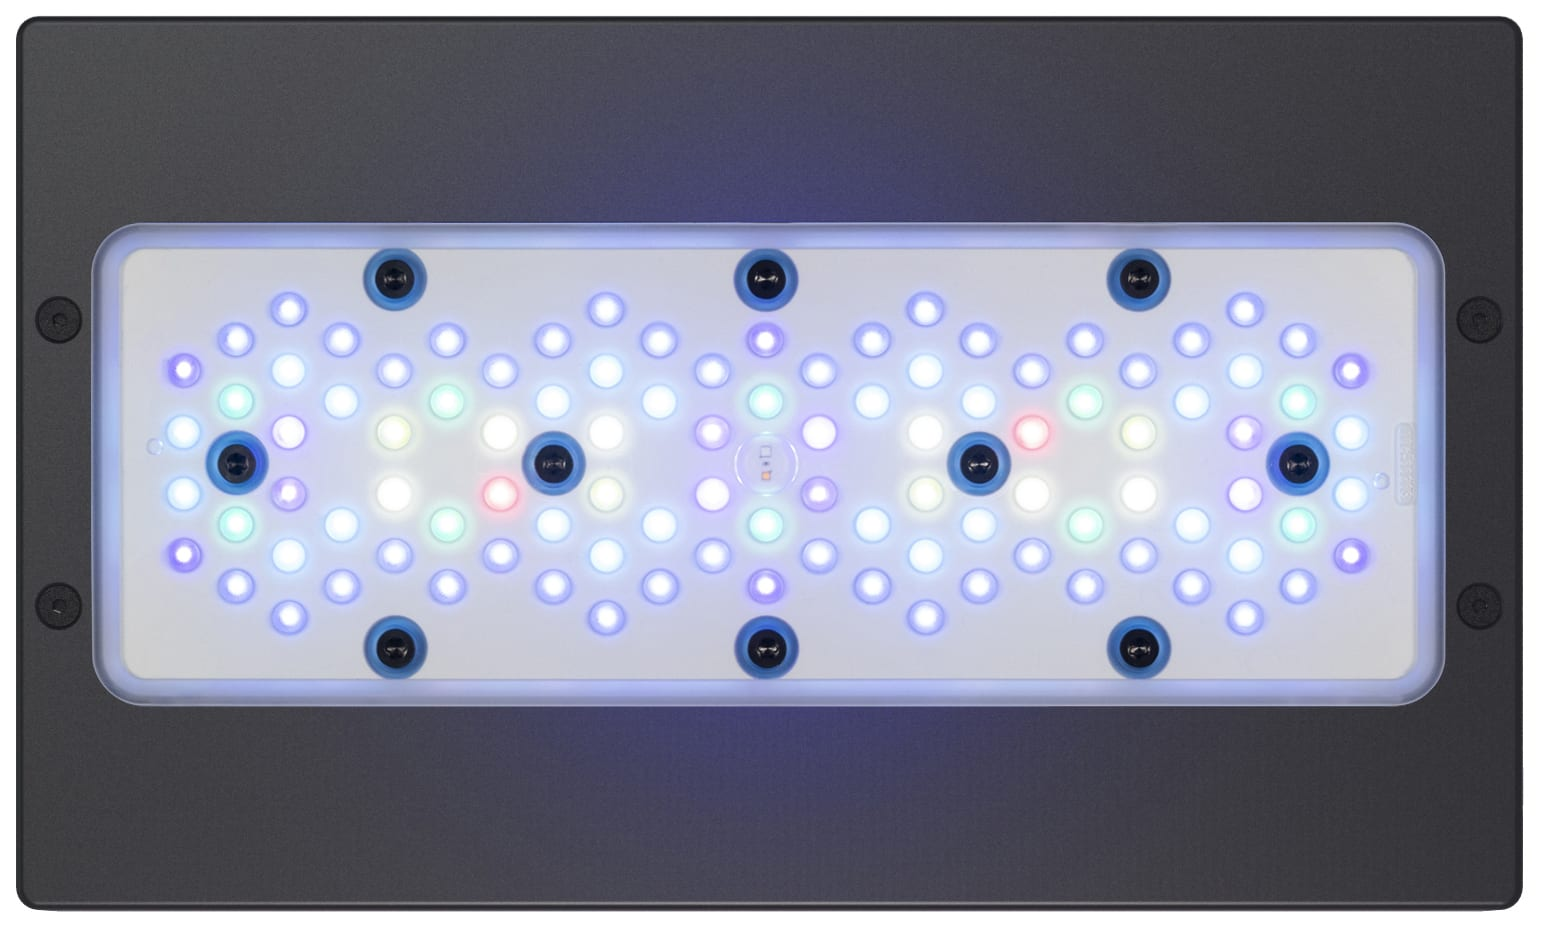 Ecotech Radion XR15w G5 Blue LED Lighting